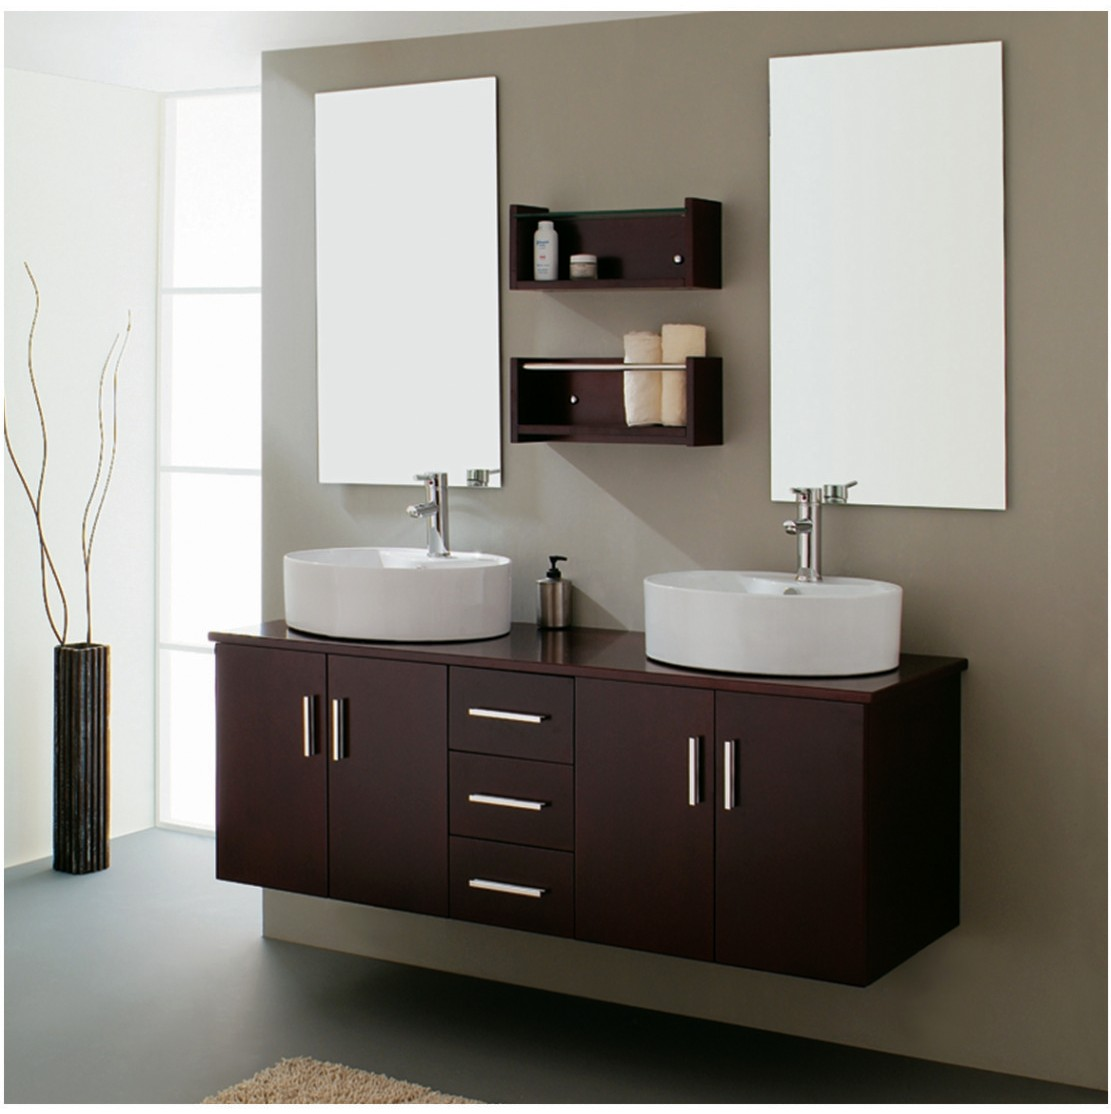 Modern bathroom double sink home decorating ideas - Home decor bathroom vanities ...